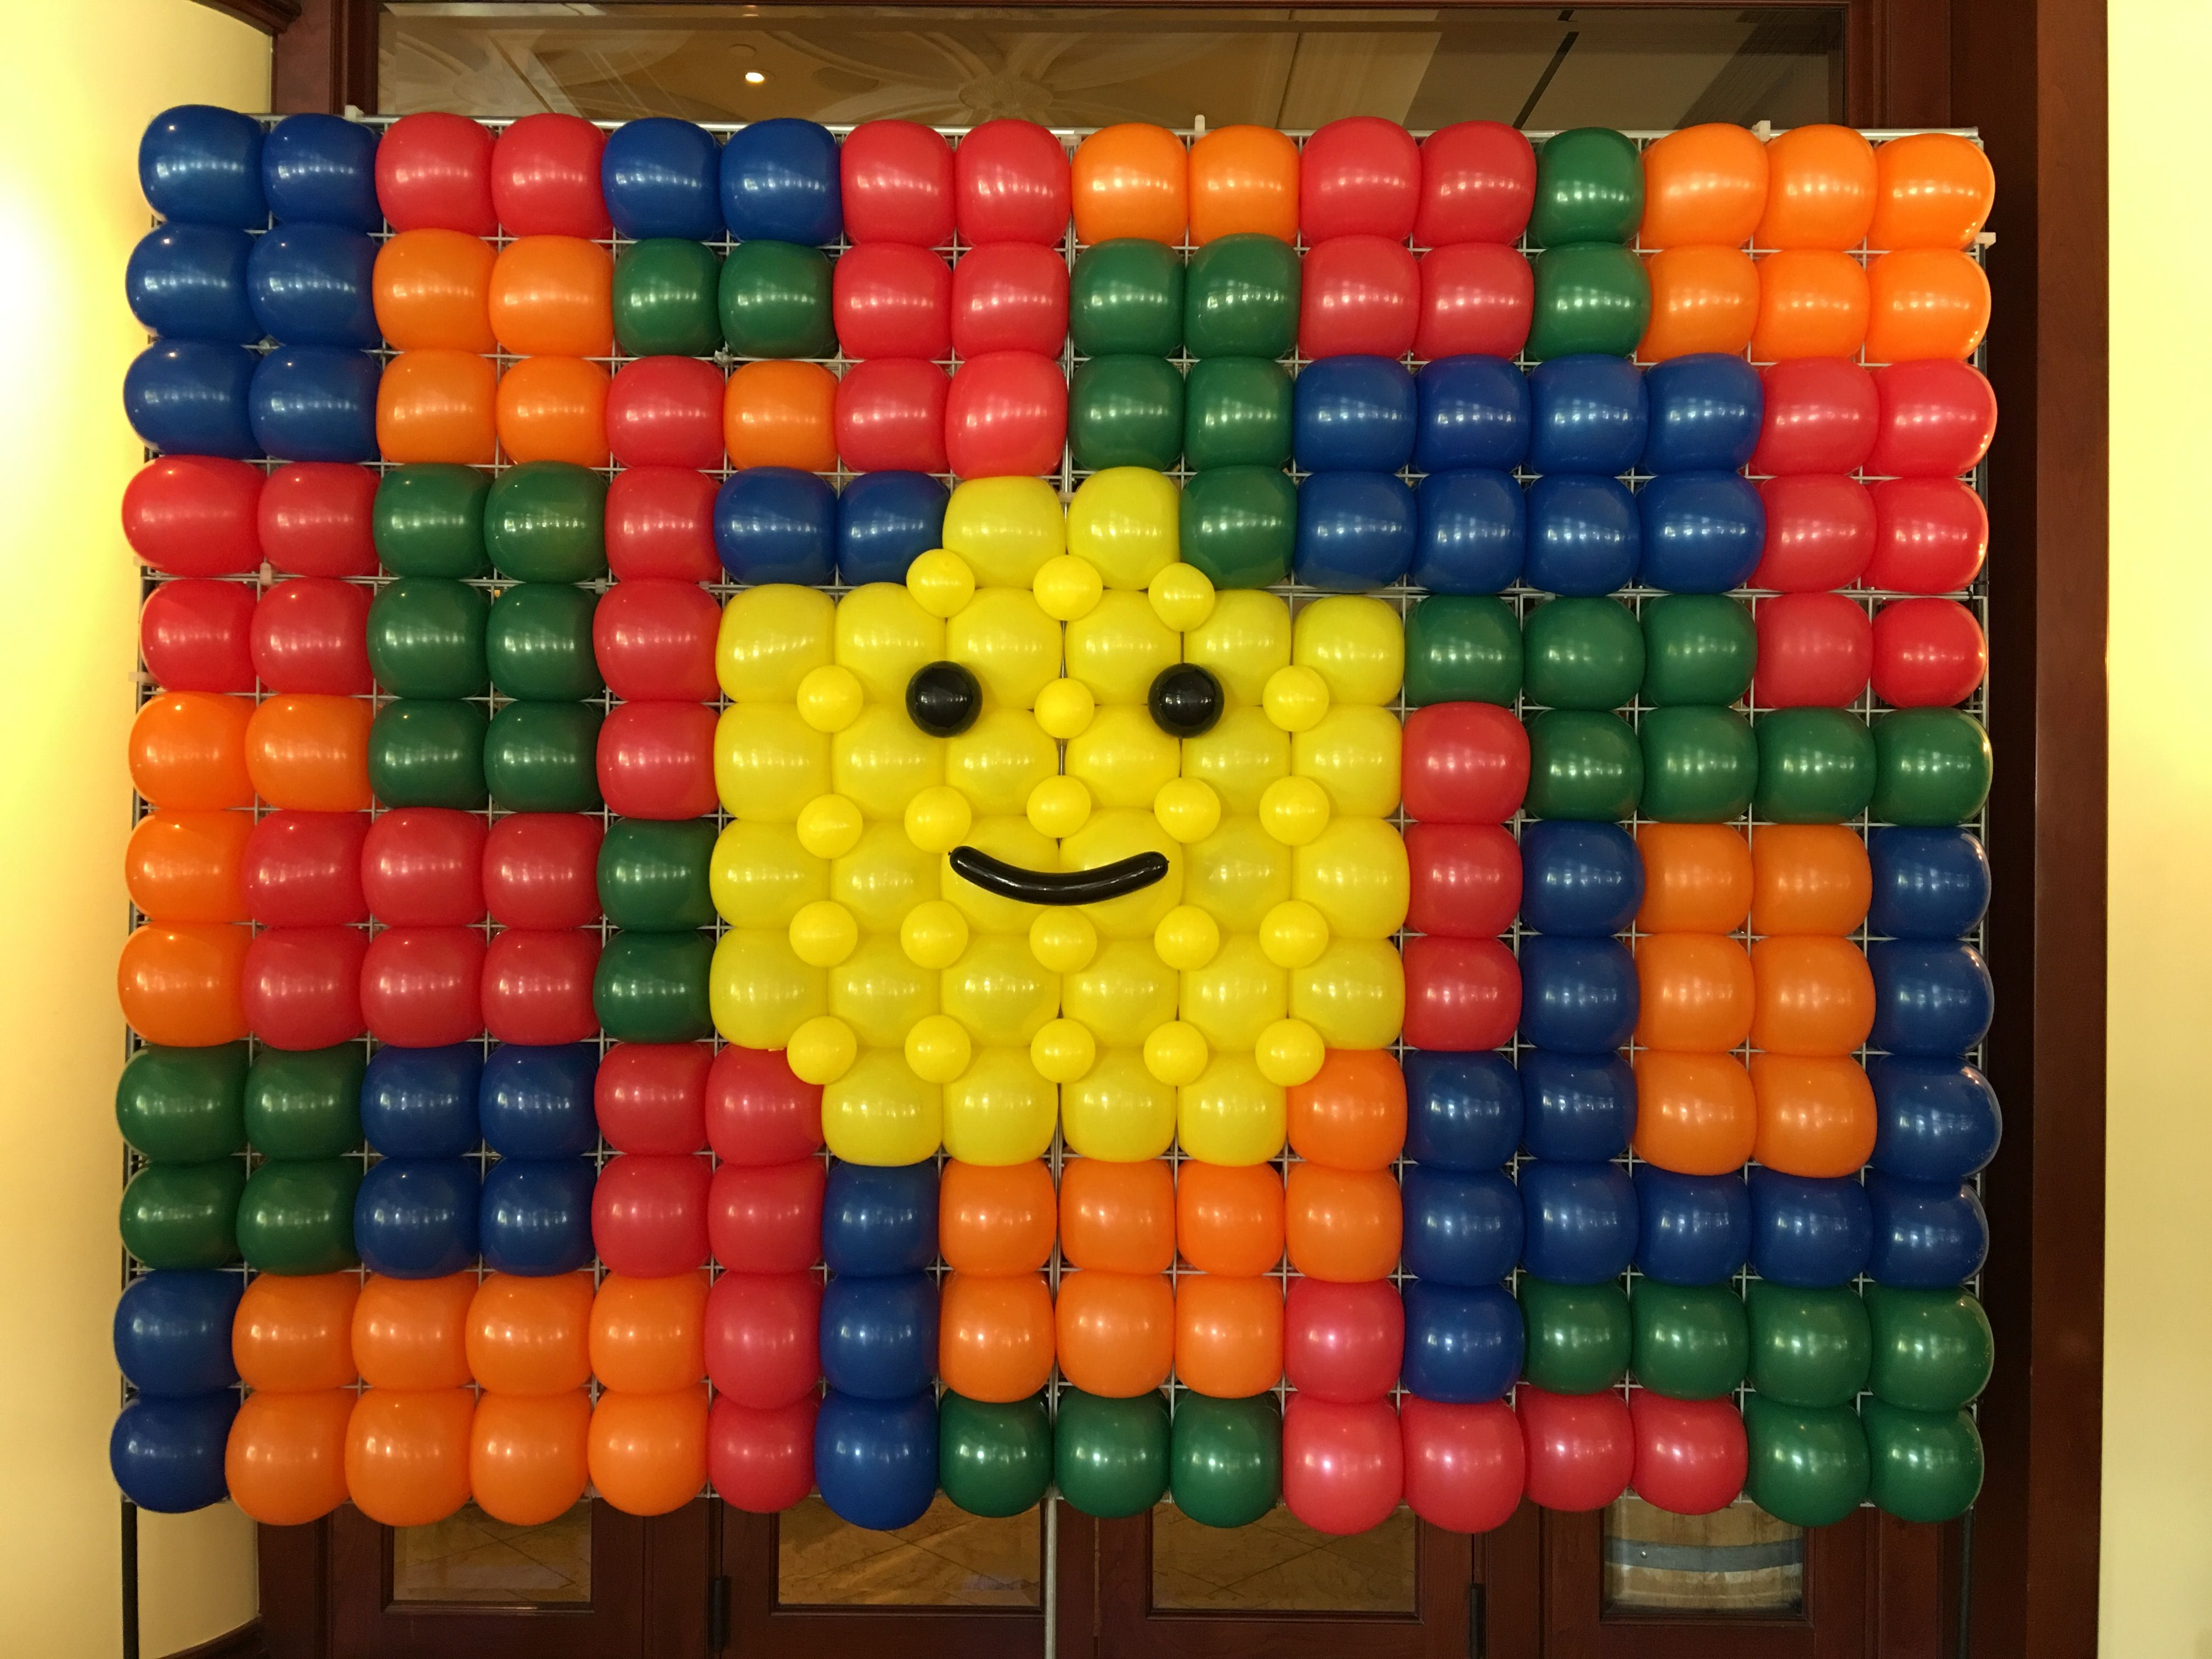 Themed Or Logo Walls Are Our Specialty If You Imagine It We Can Create It Lego Legoballoons Balloondecor Lego Balloons Balloon Decorations Balloon Wall